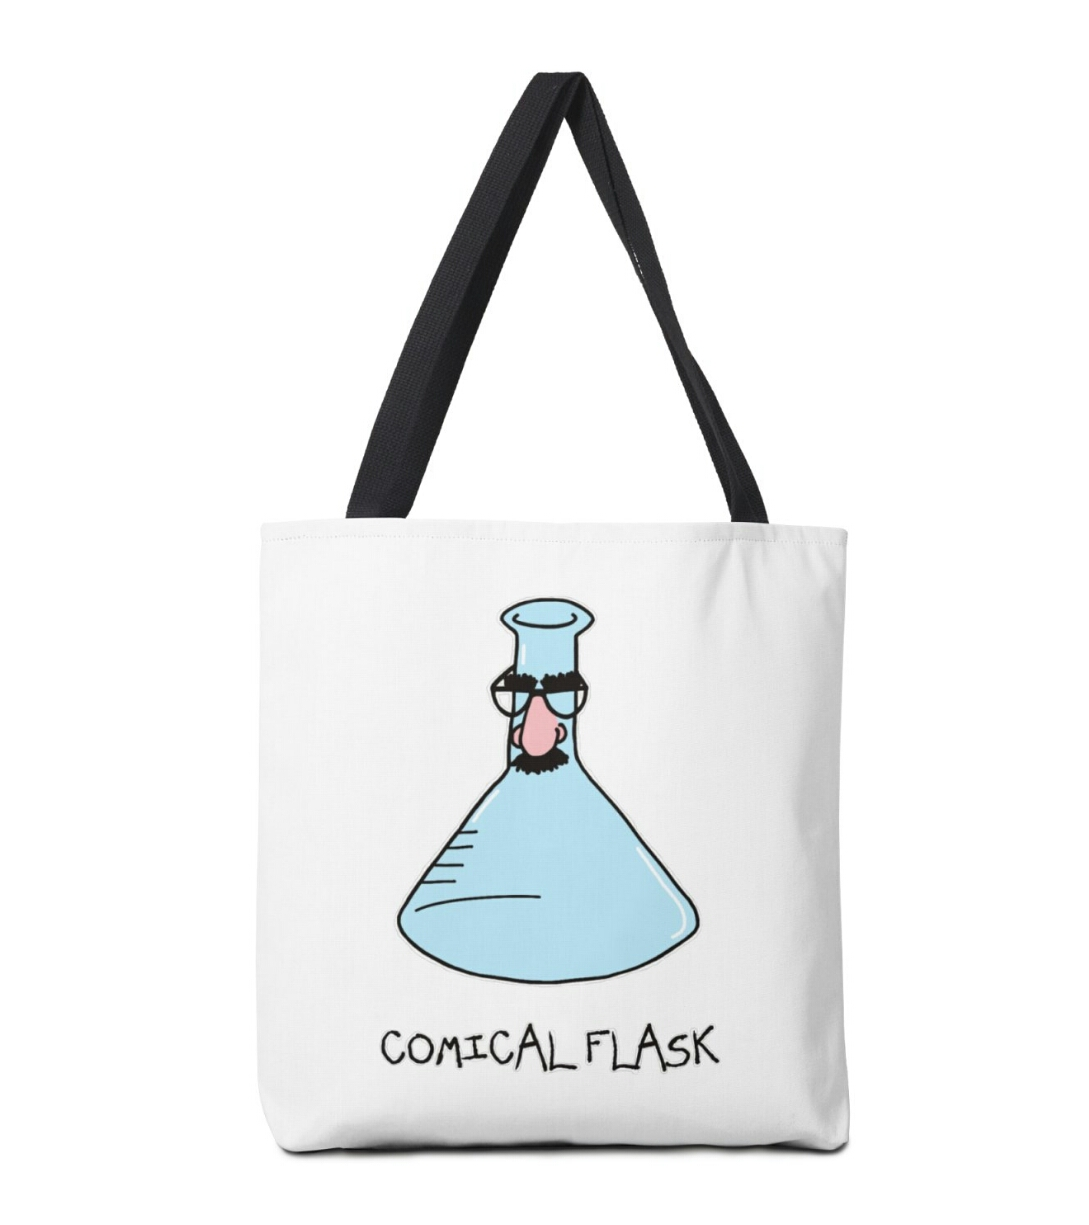 Comical Flask Tote Bag Adrienne Body